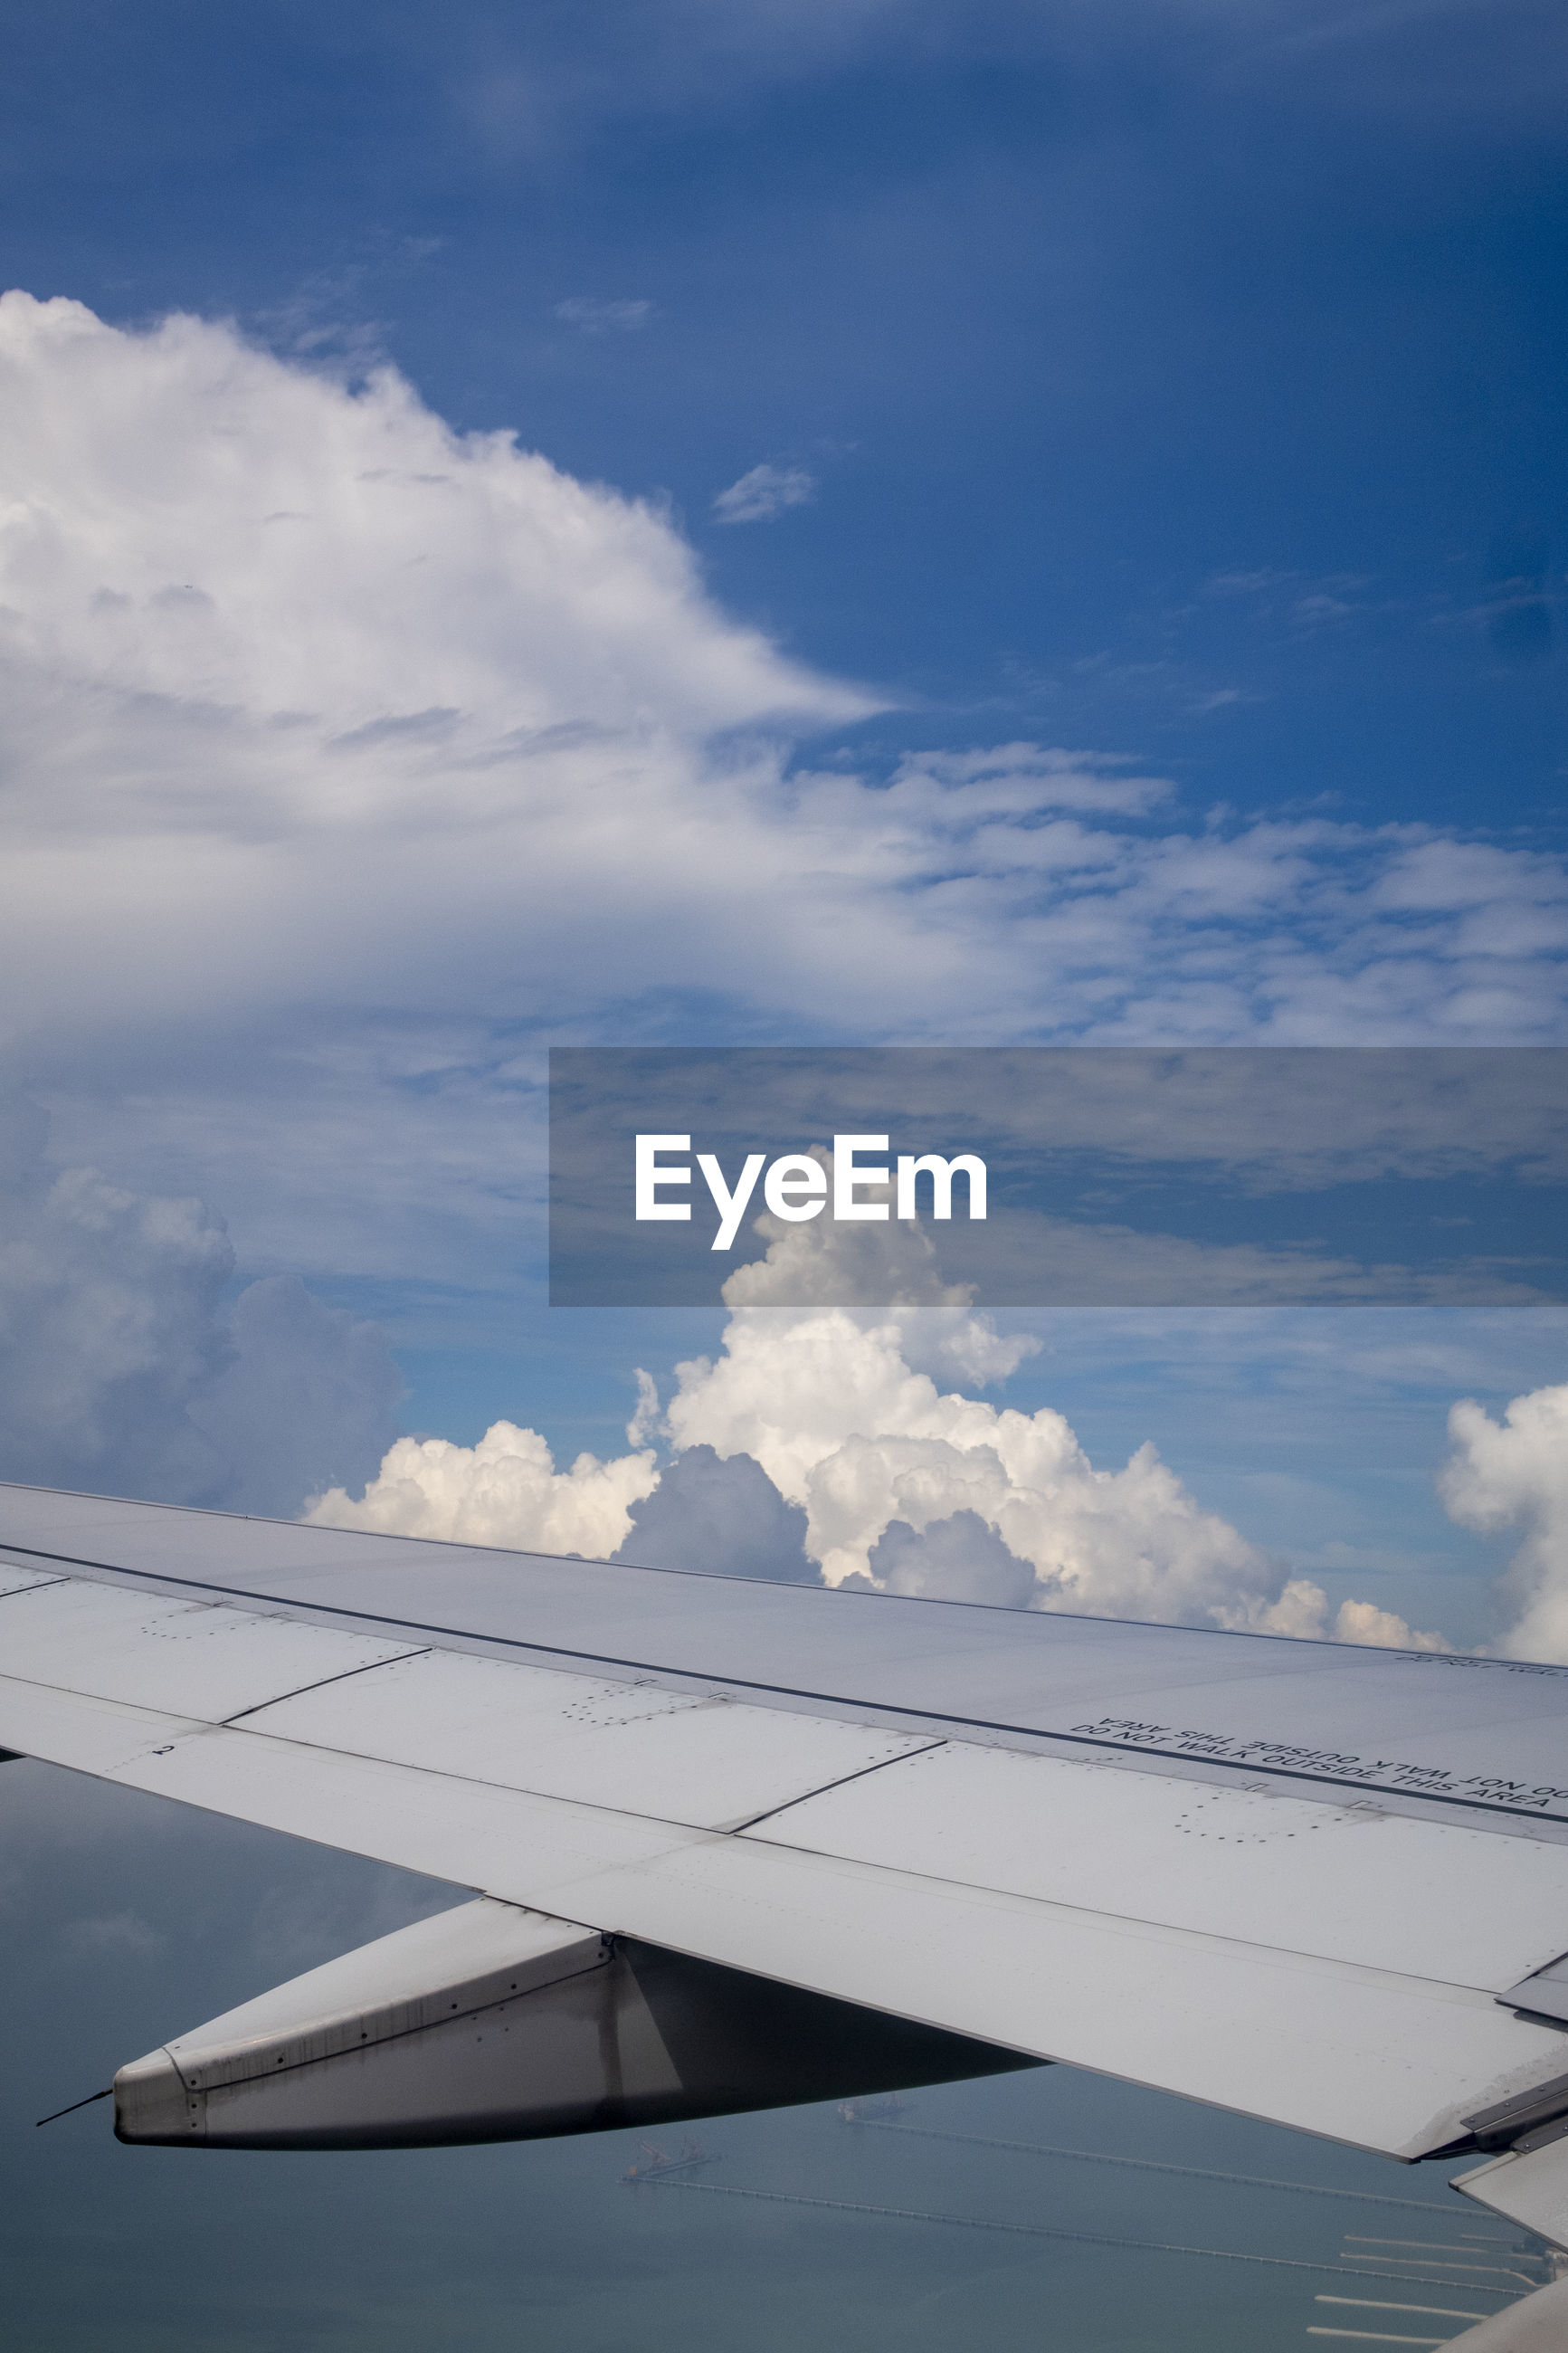 cloud - sky, air vehicle, airplane, sky, aircraft wing, mode of transportation, transportation, day, no people, nature, scenics - nature, travel, flying, beauty in nature, outdoors, public transportation, blue, motion, airport, sunlight